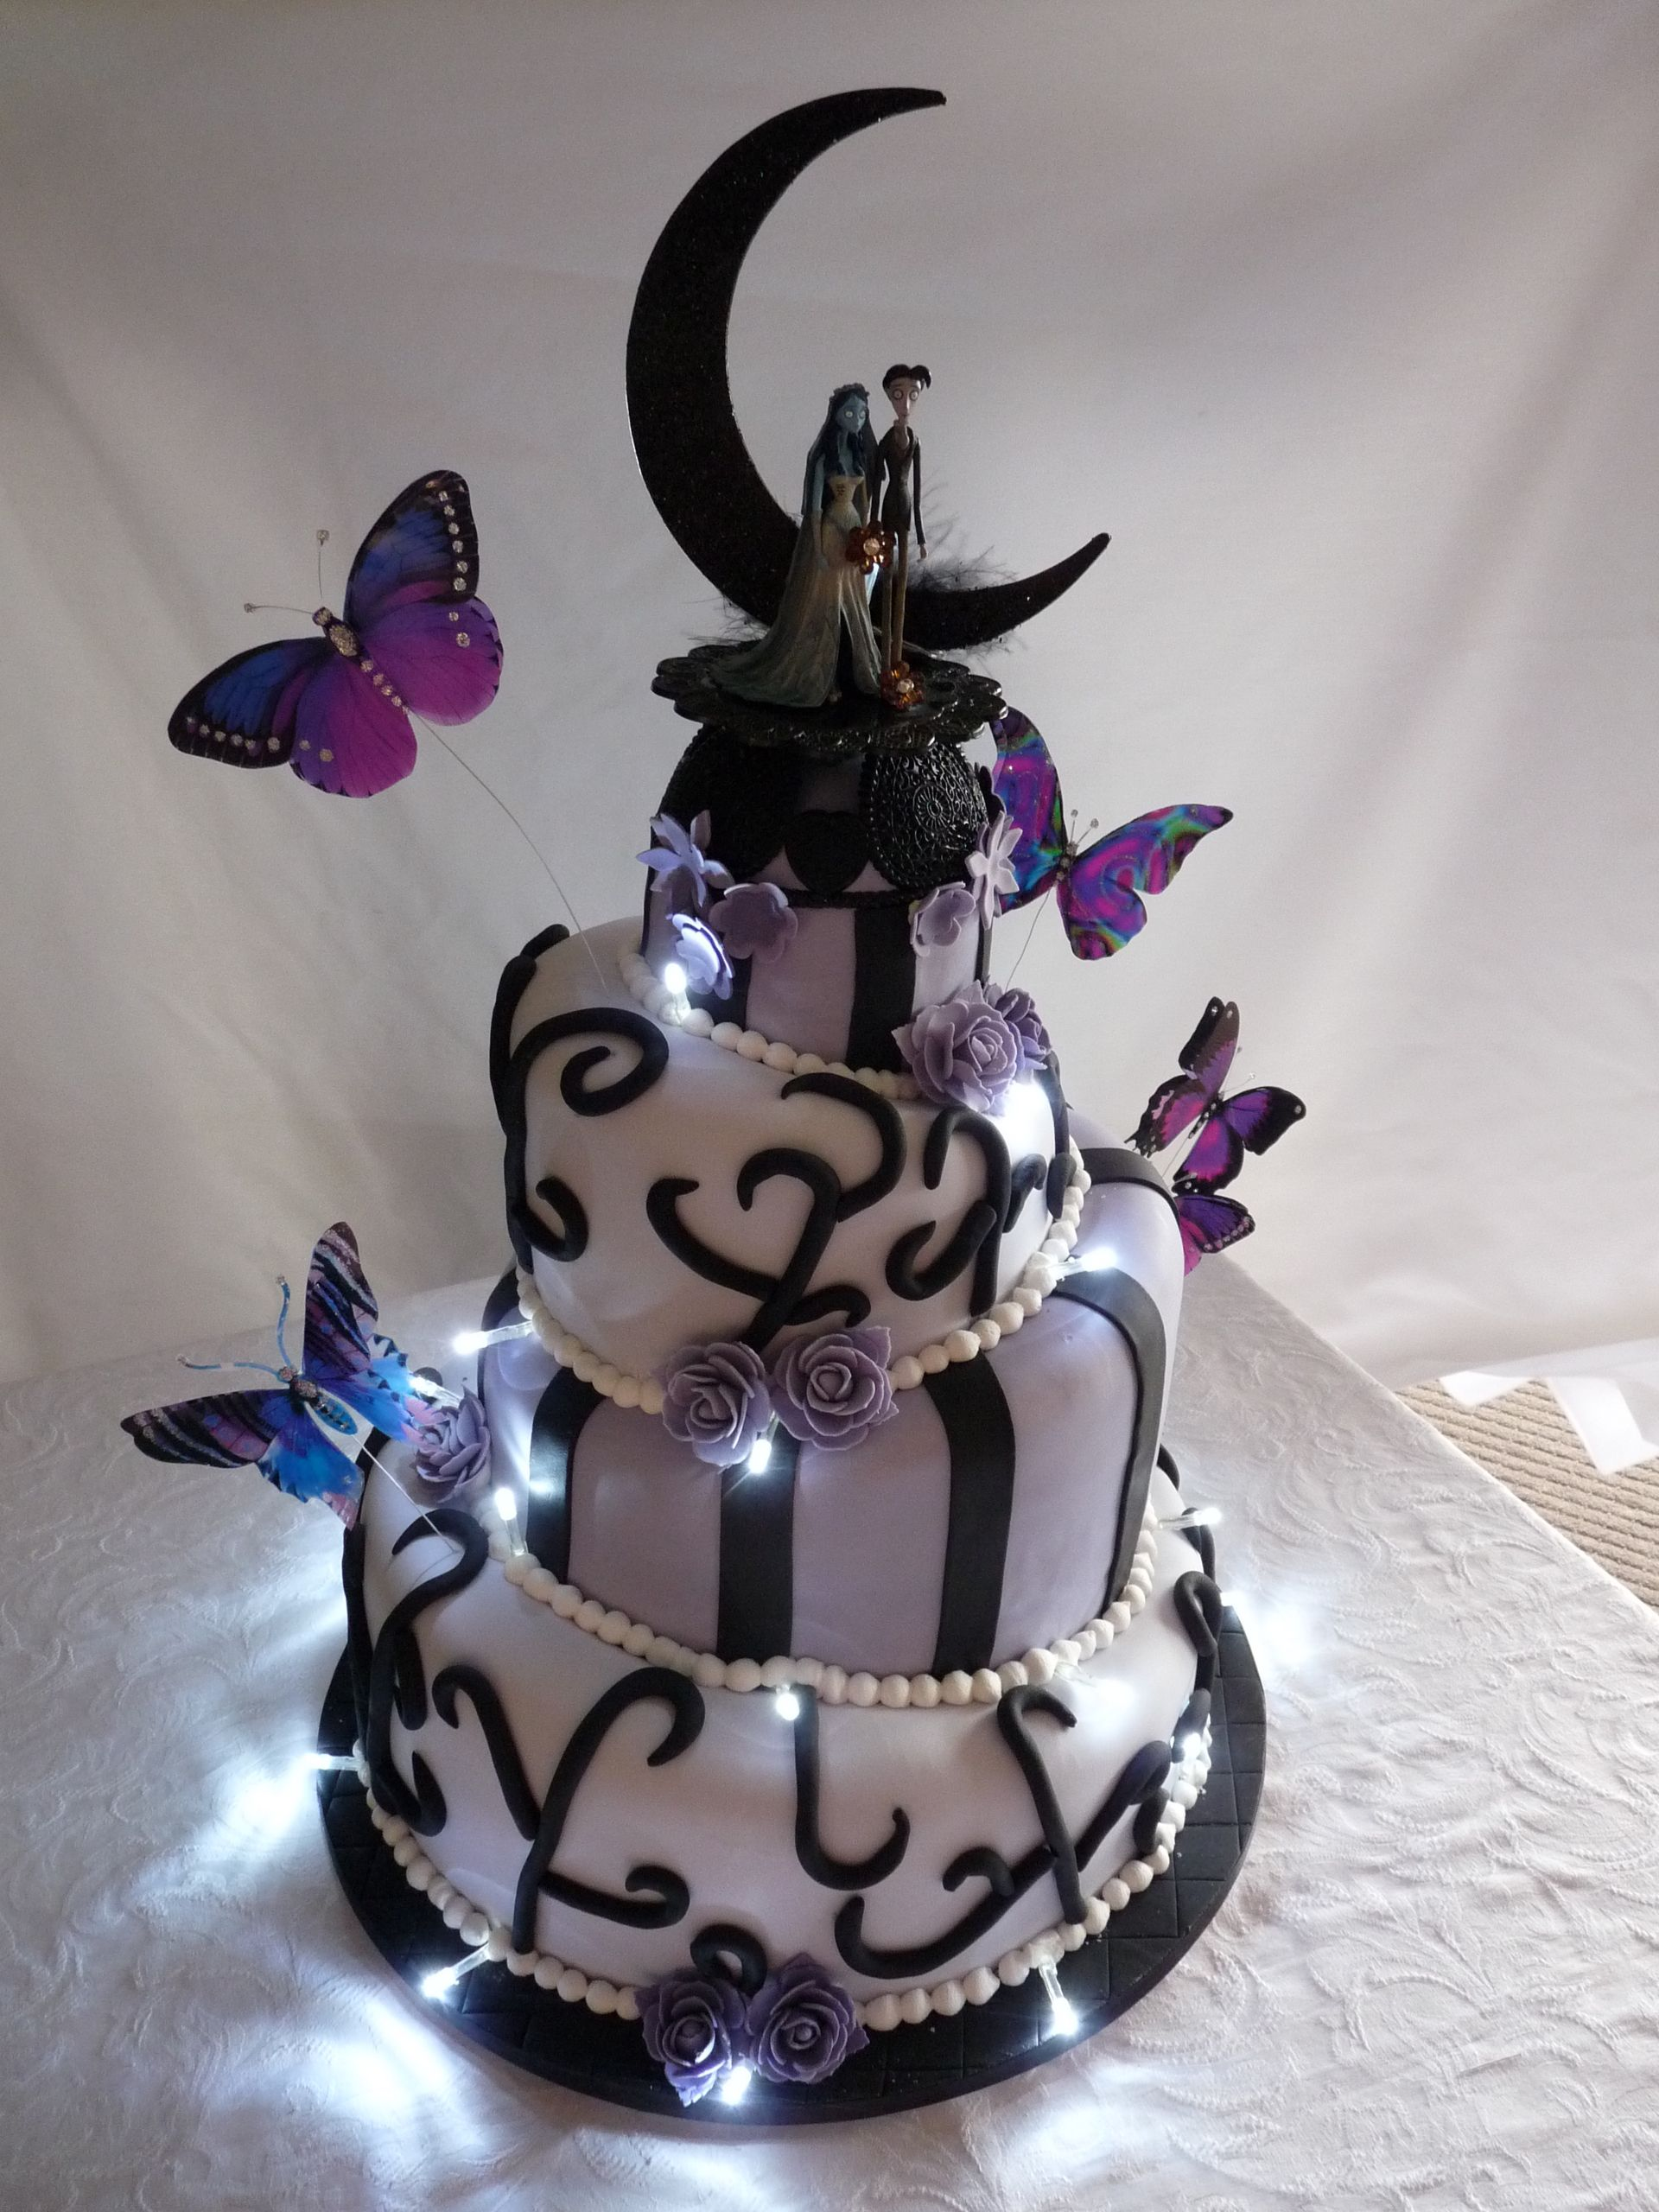 Corpse Bride wedding cake Thank you so much for sharing your